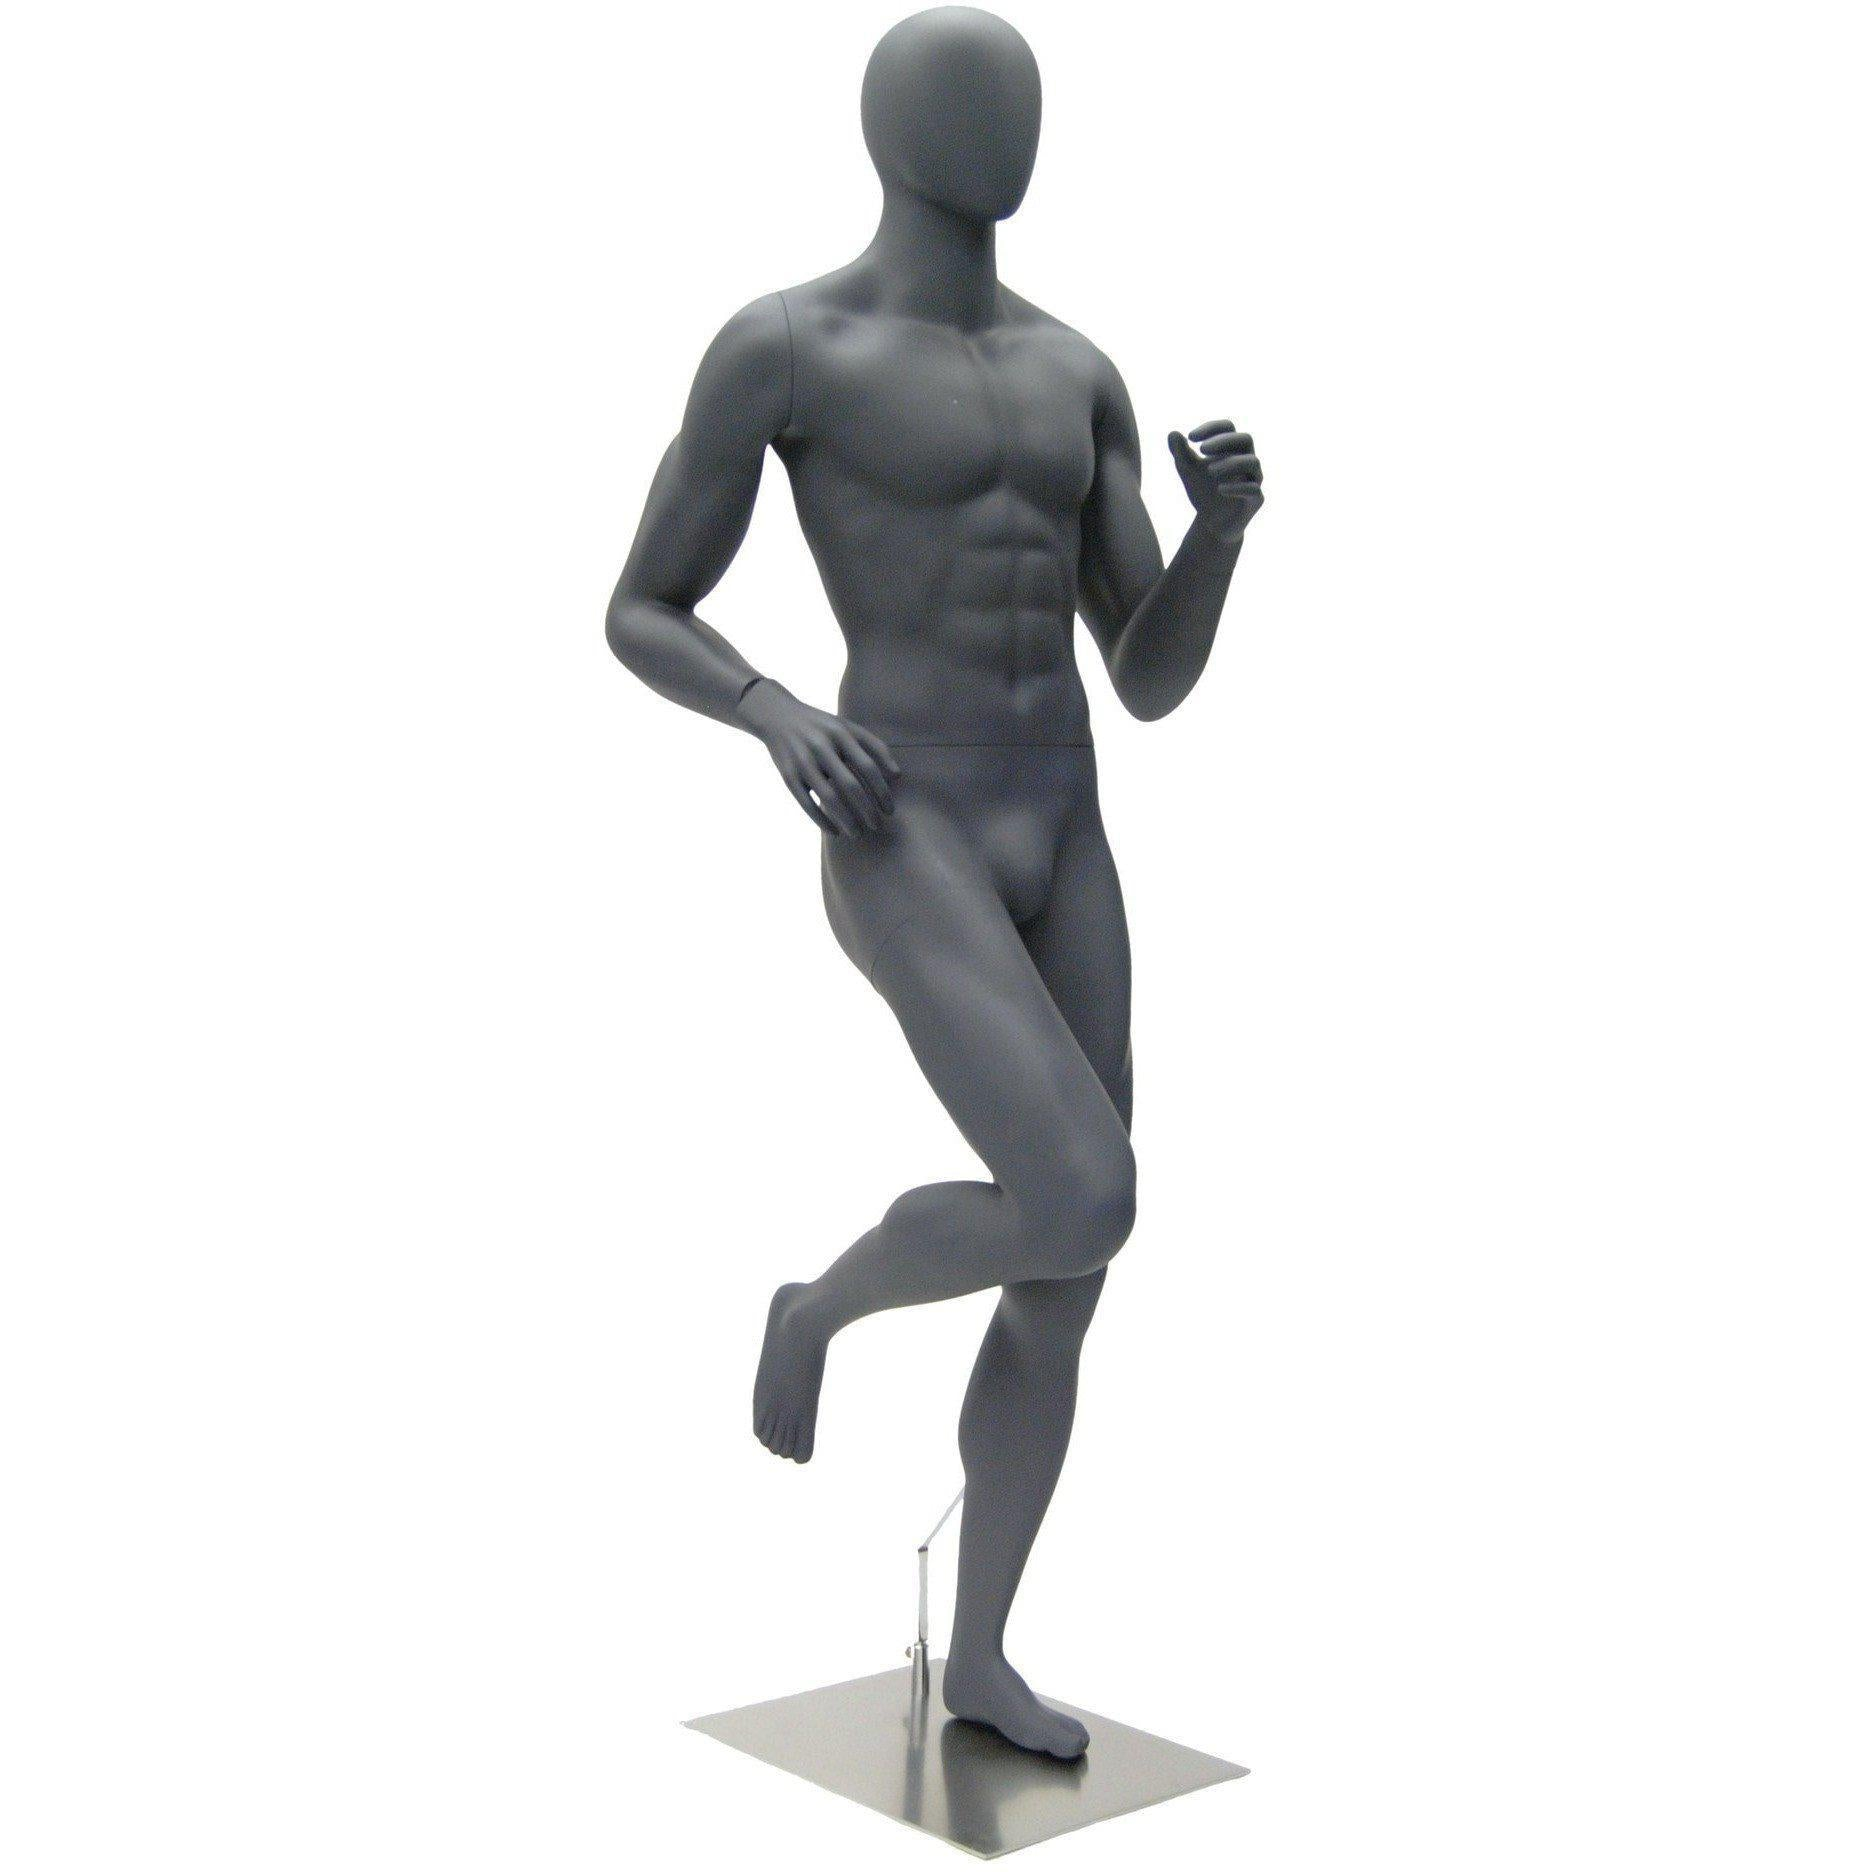 Mannequin Mall Male Abstract Athletic Running Mannequin MM-HEF63EG For Fashion Stores and Retail Shops